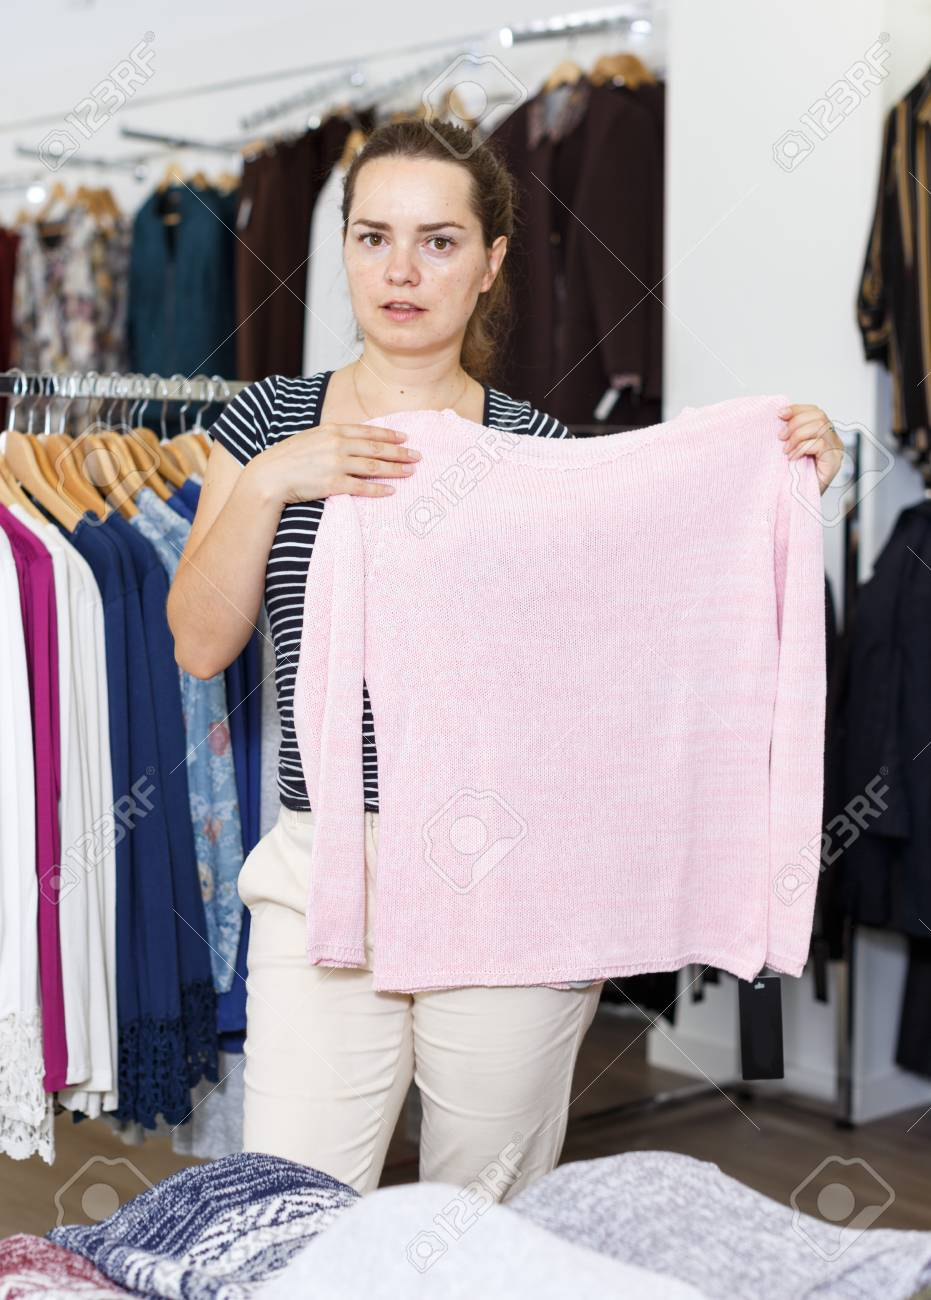 440c324a2d Young cheerful woman shopping in clothing boutique Stock Photo - 113843665